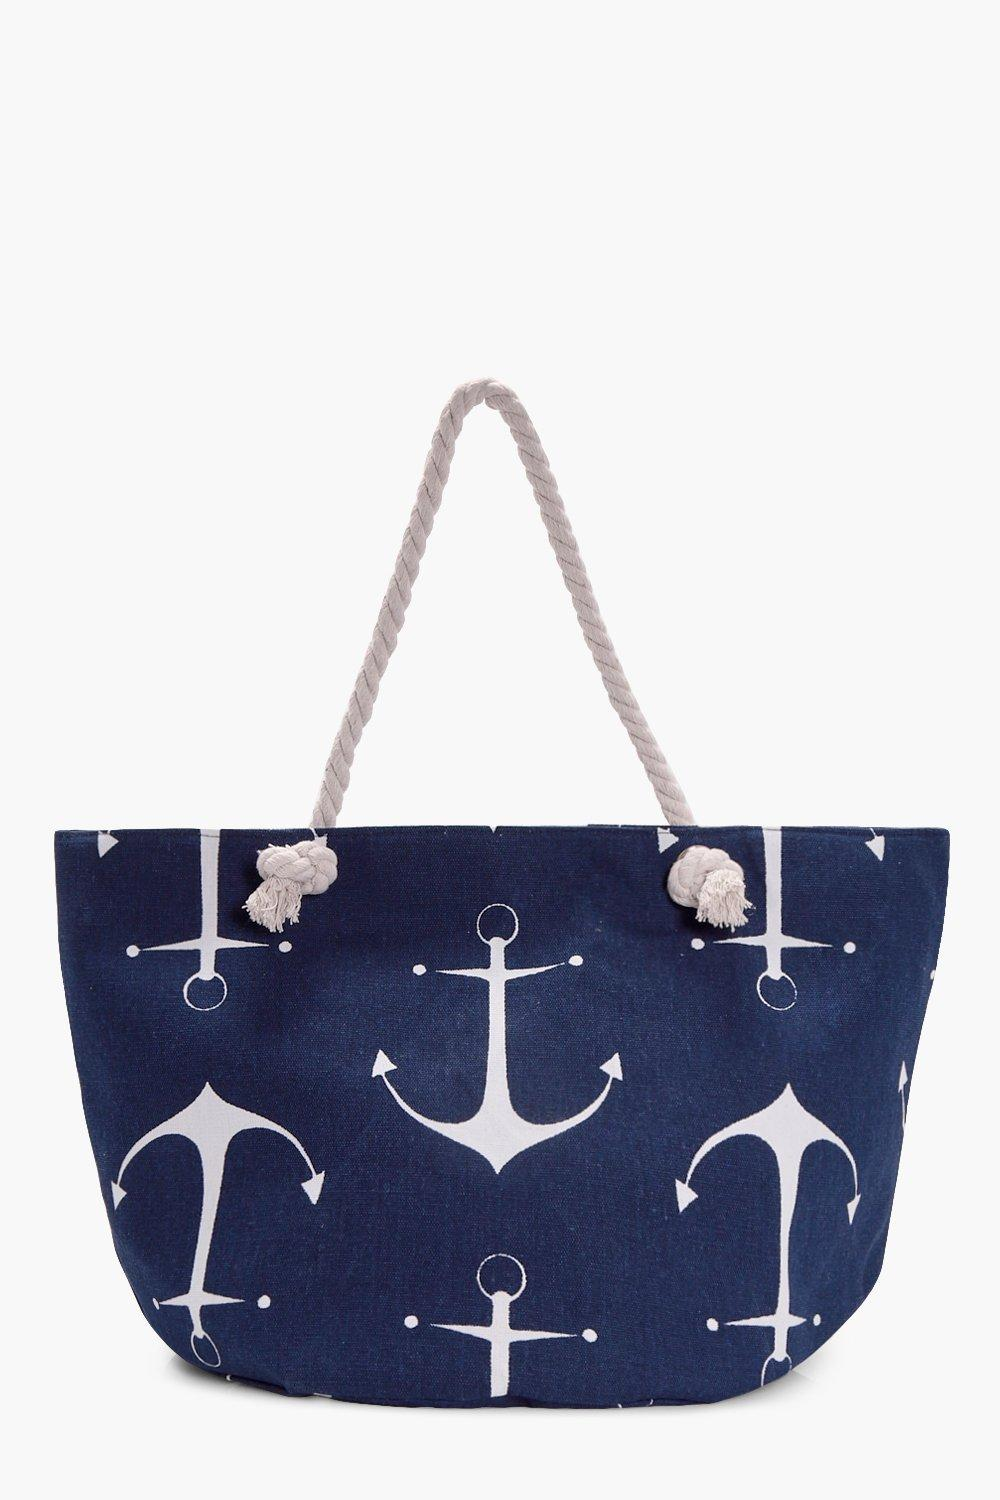 Anchor Print Beach Bag - navy - Maria Anchor Print